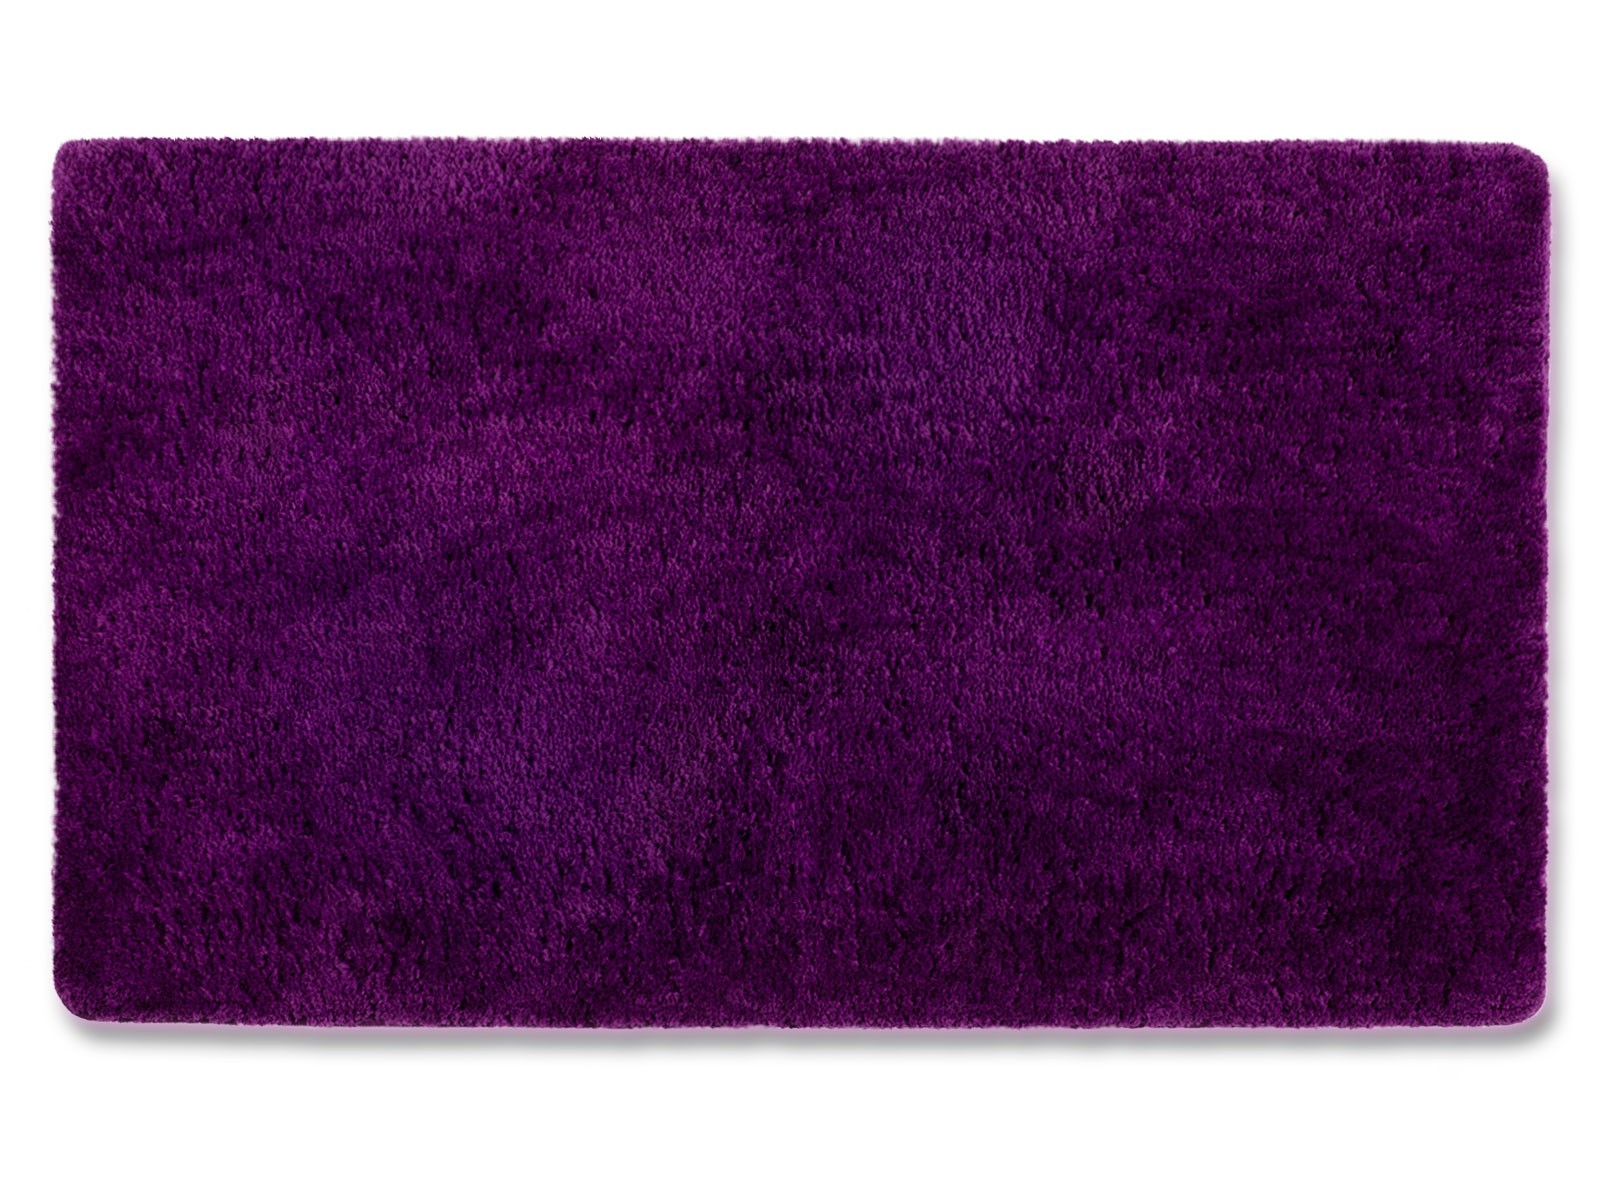 Permalink to Lilac Rubber Bath Mat